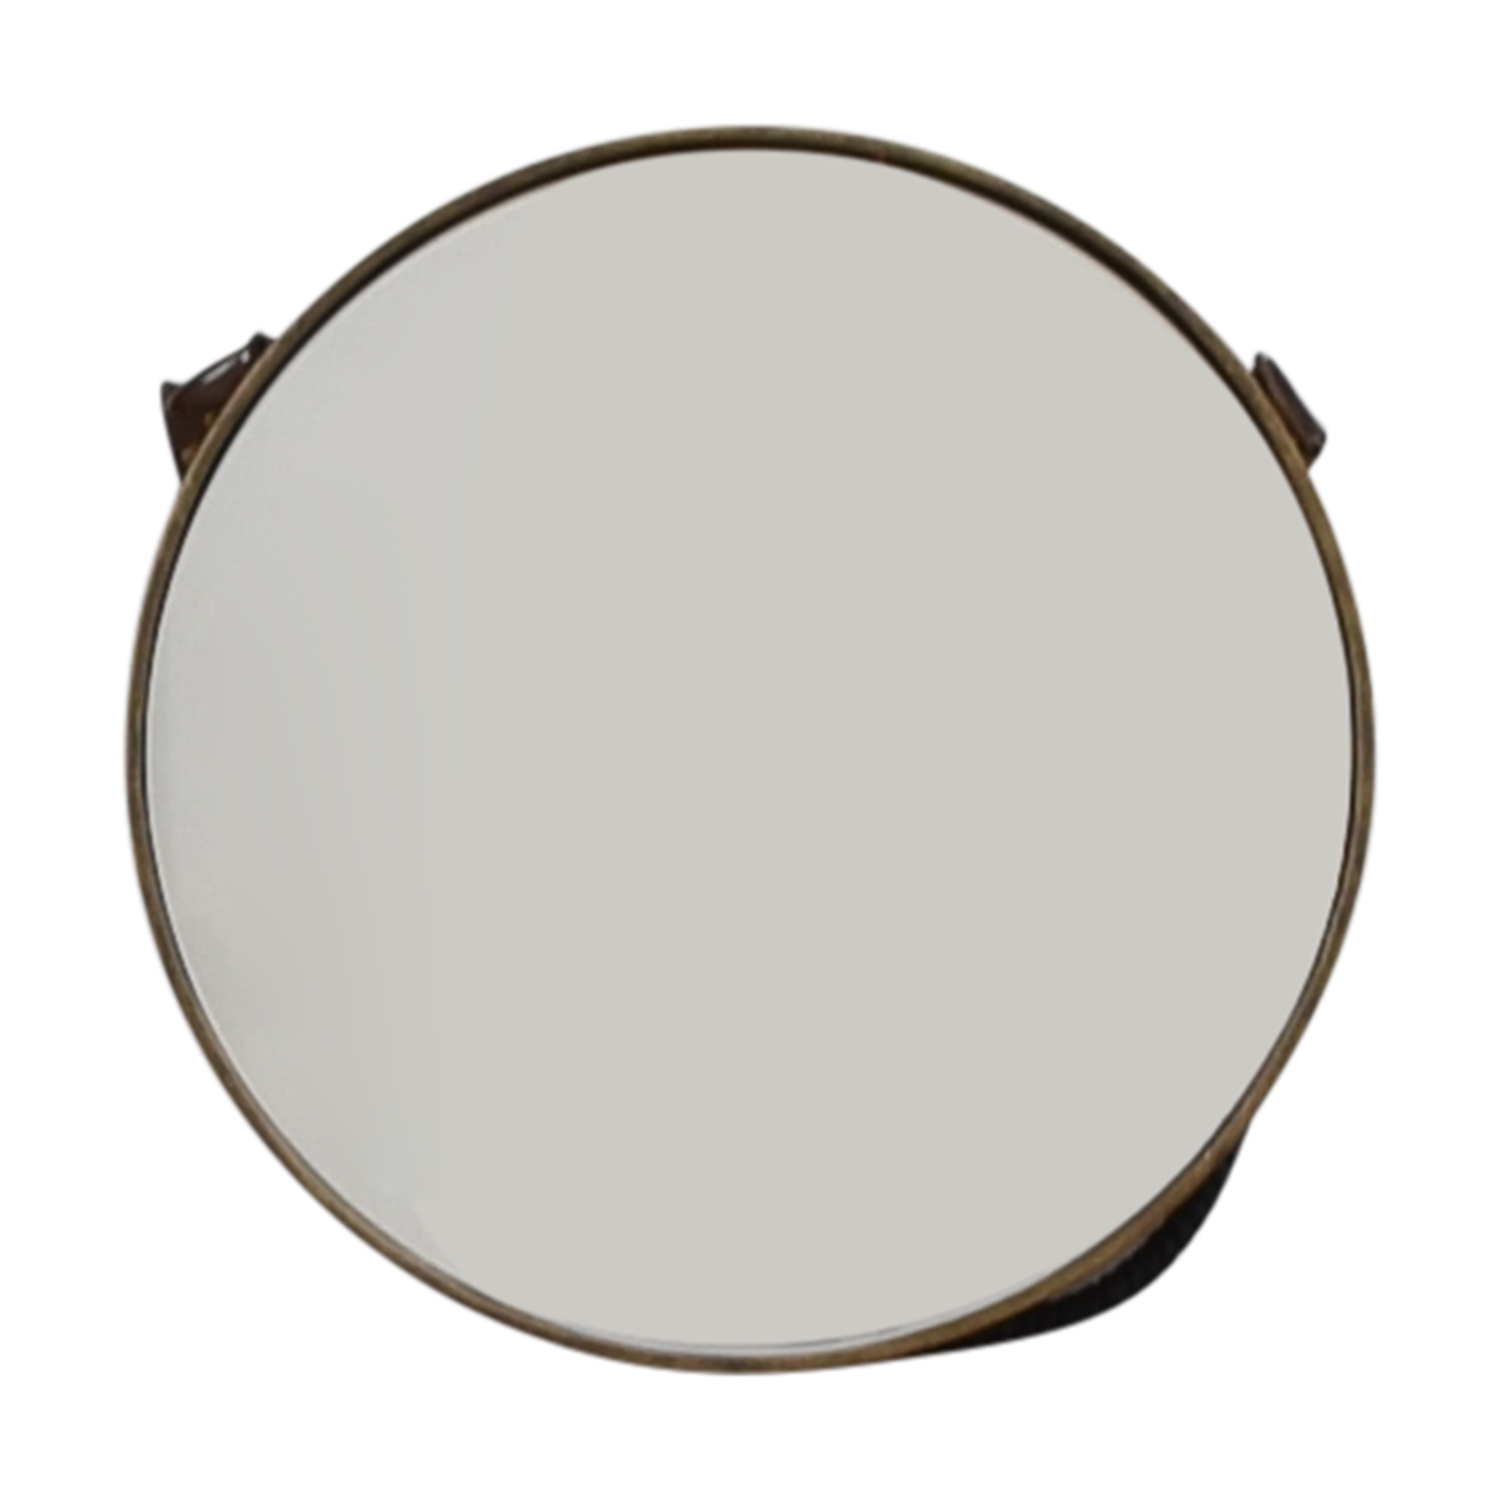 Anthropologie Anthropologie Round Corded Wall Mirror second hand